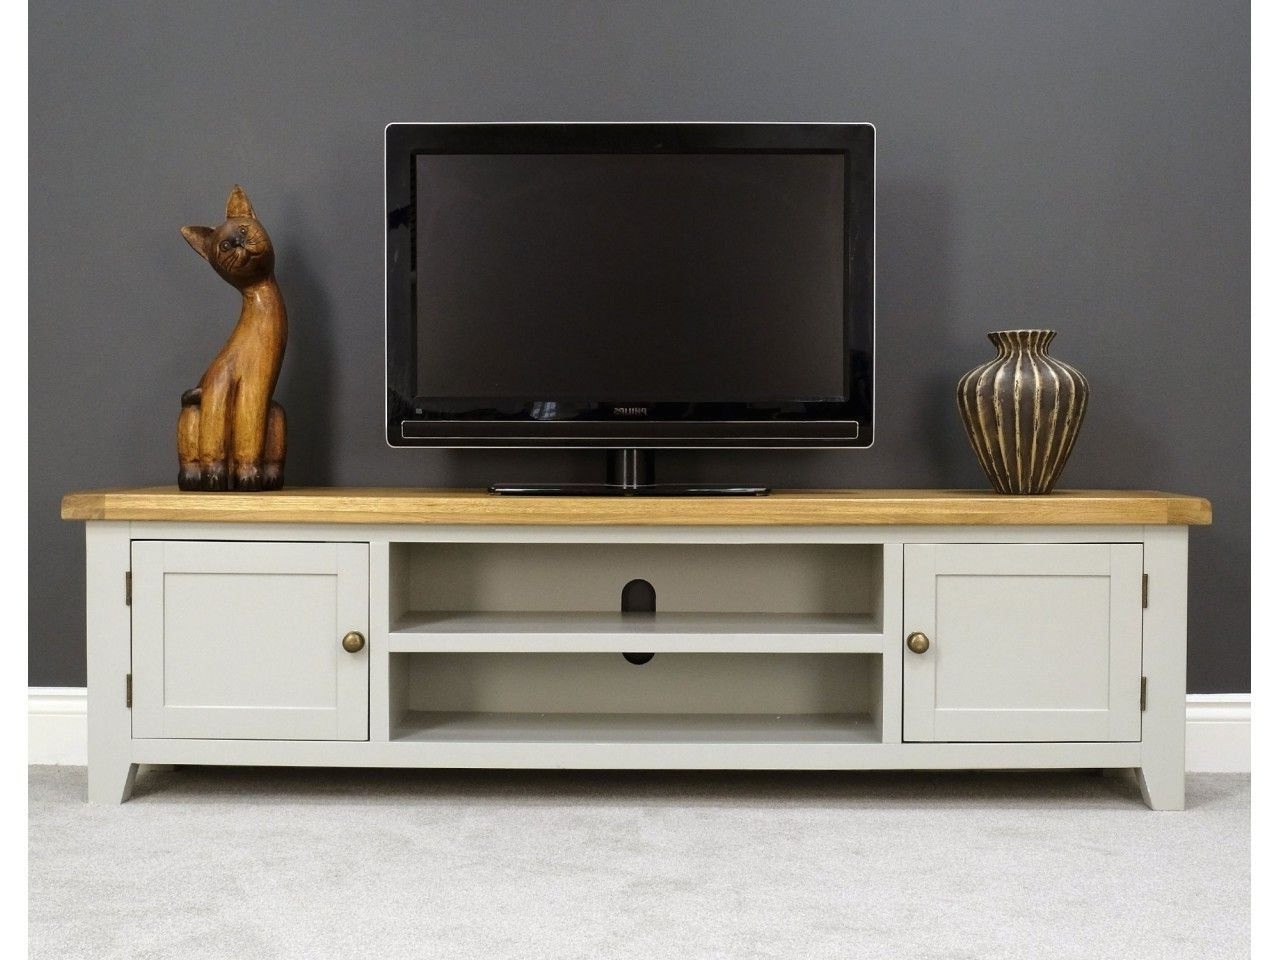 Arklow Grey Oak 180cm Extra Large Tv Unit | Tv Stand | Tv In Rustic Grey Tv Stand Media Console Stands For Living Room Bedroom (View 2 of 20)